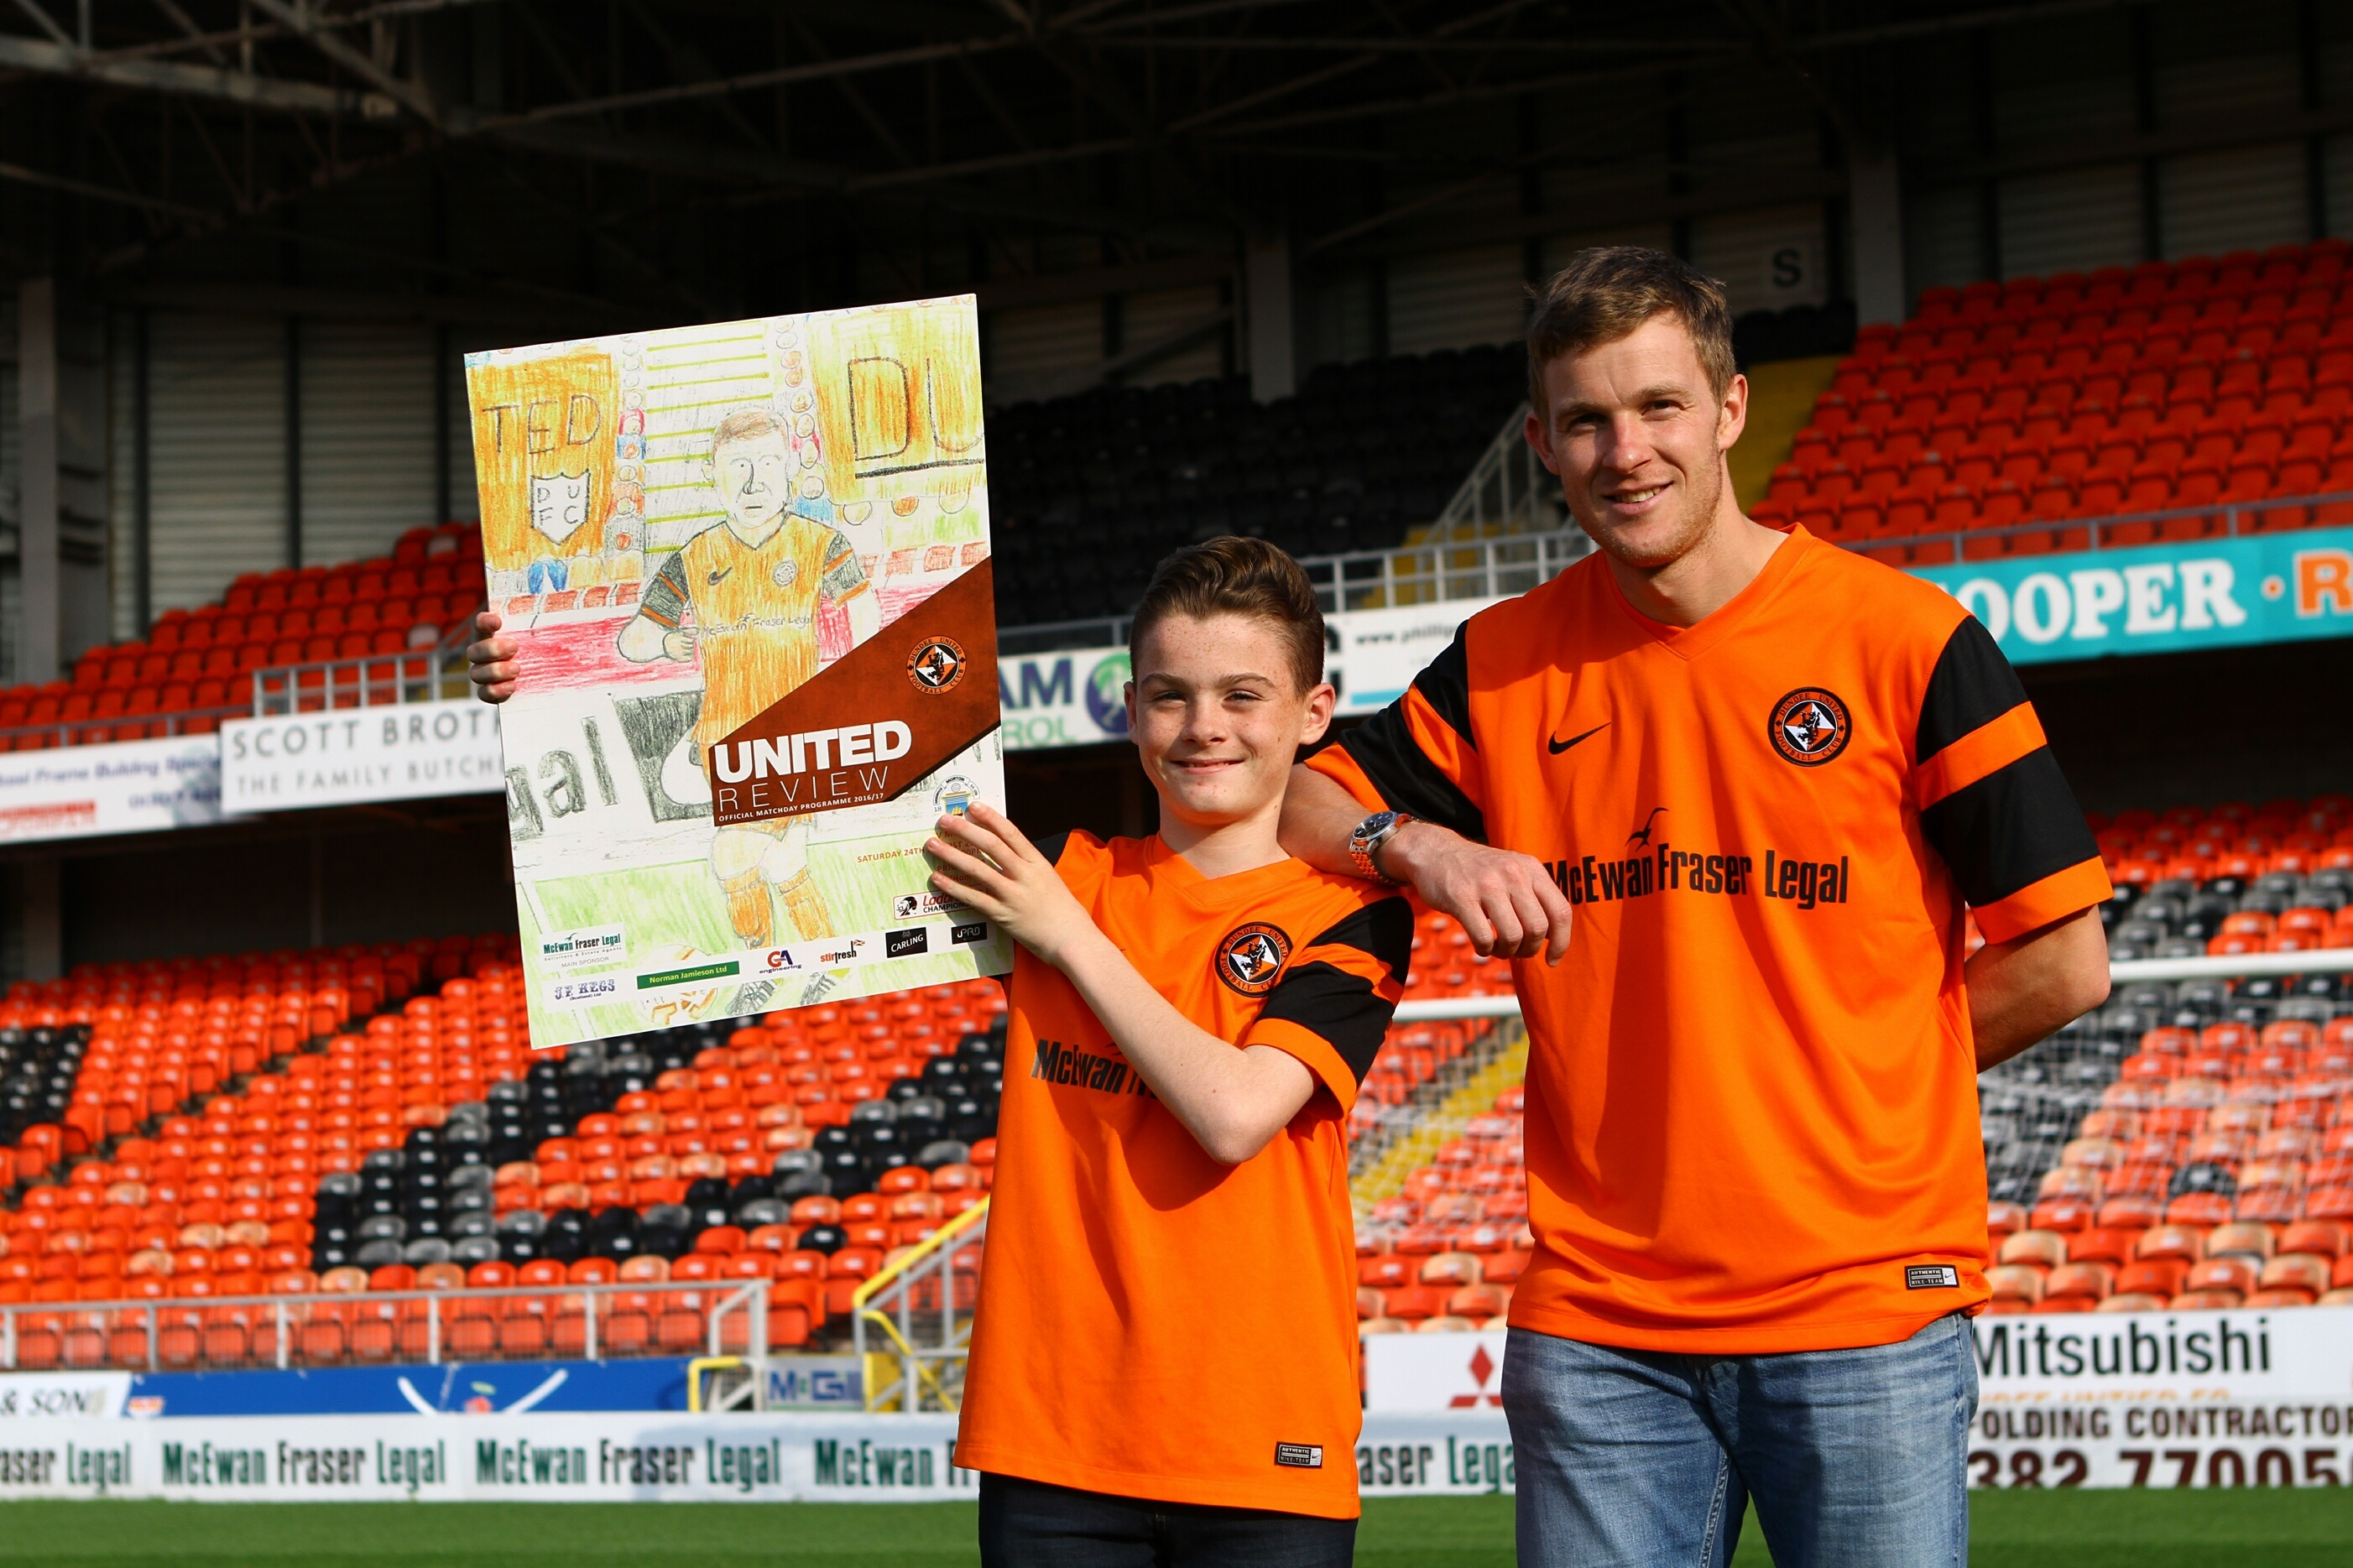 Aiden Hutton and Paul Dixon show off Aiden's cover at Tannadice.